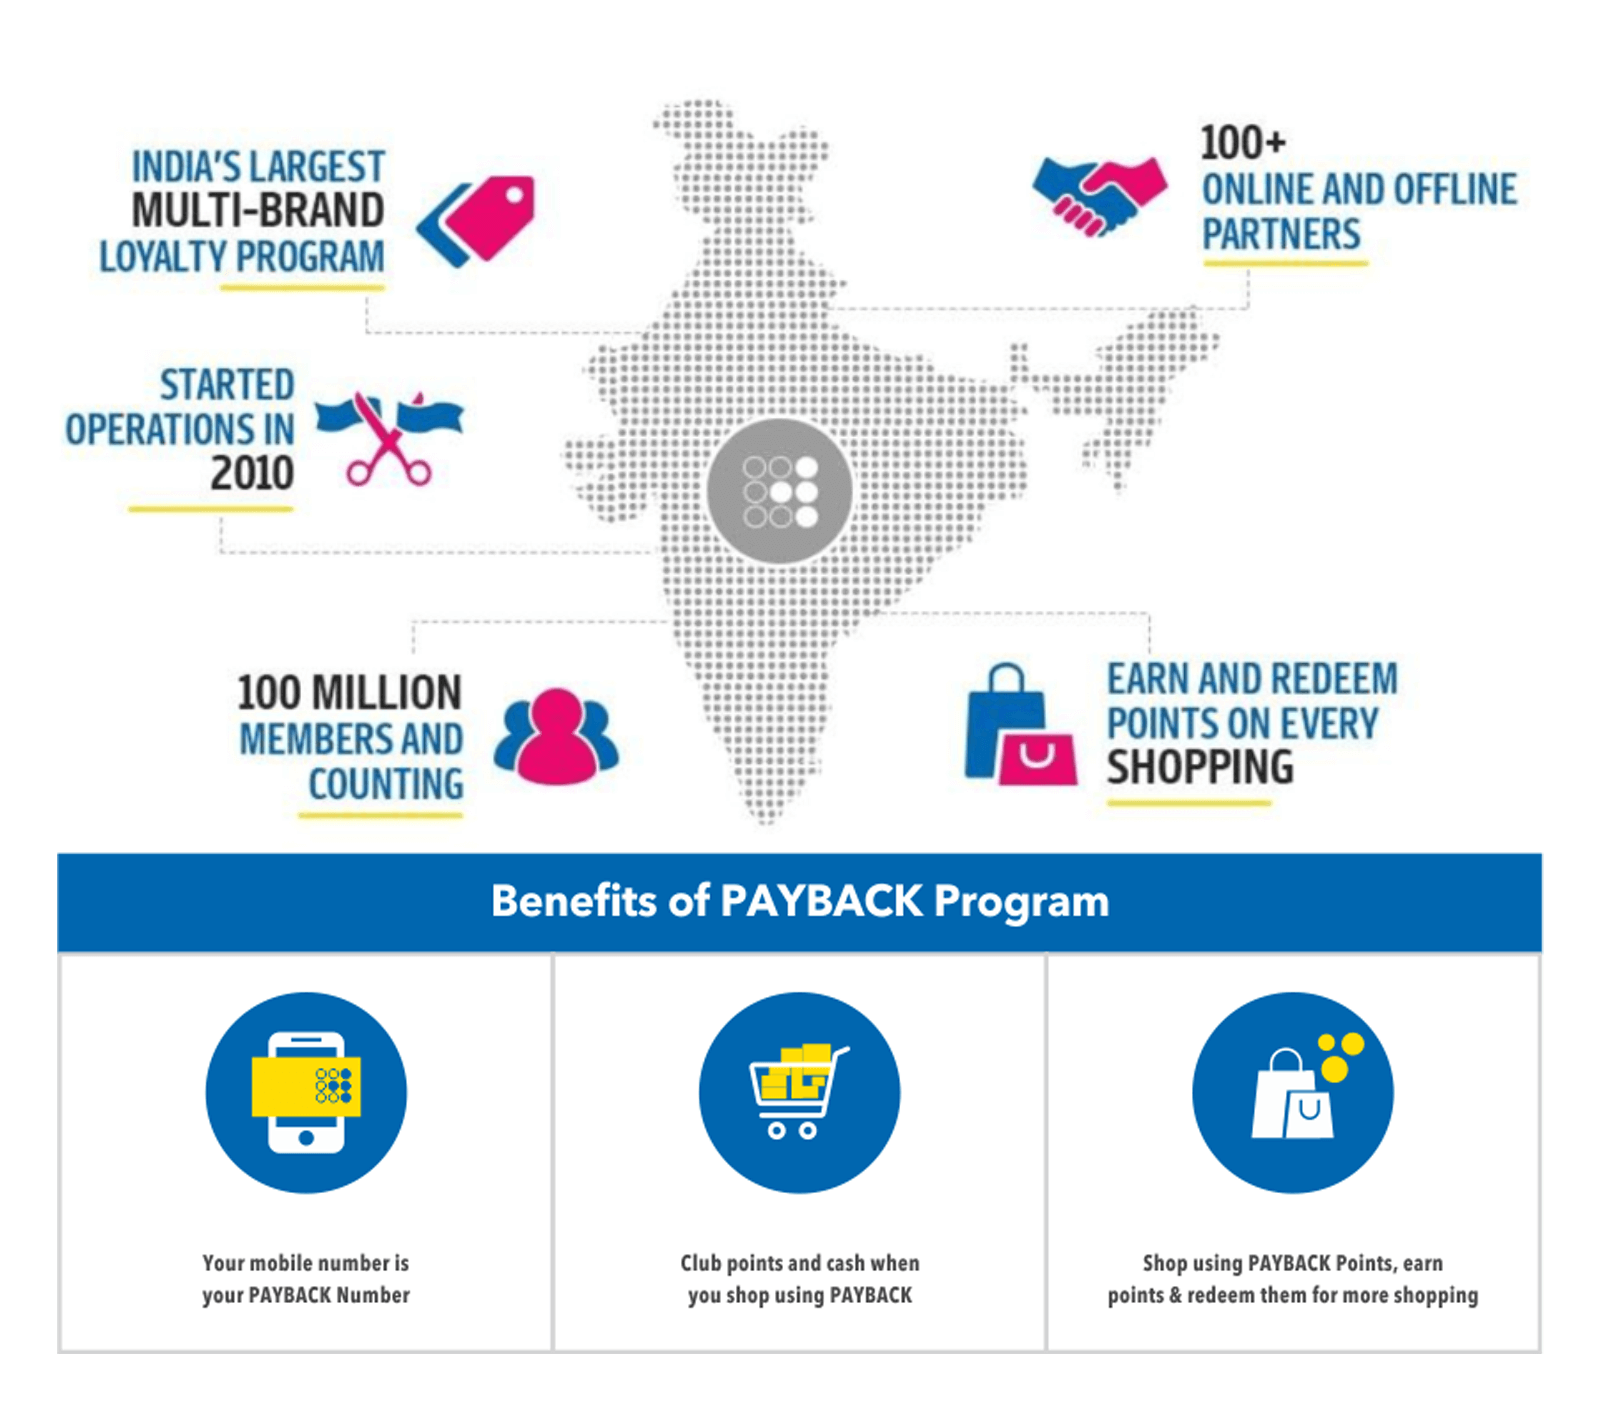 benefits of Payback program